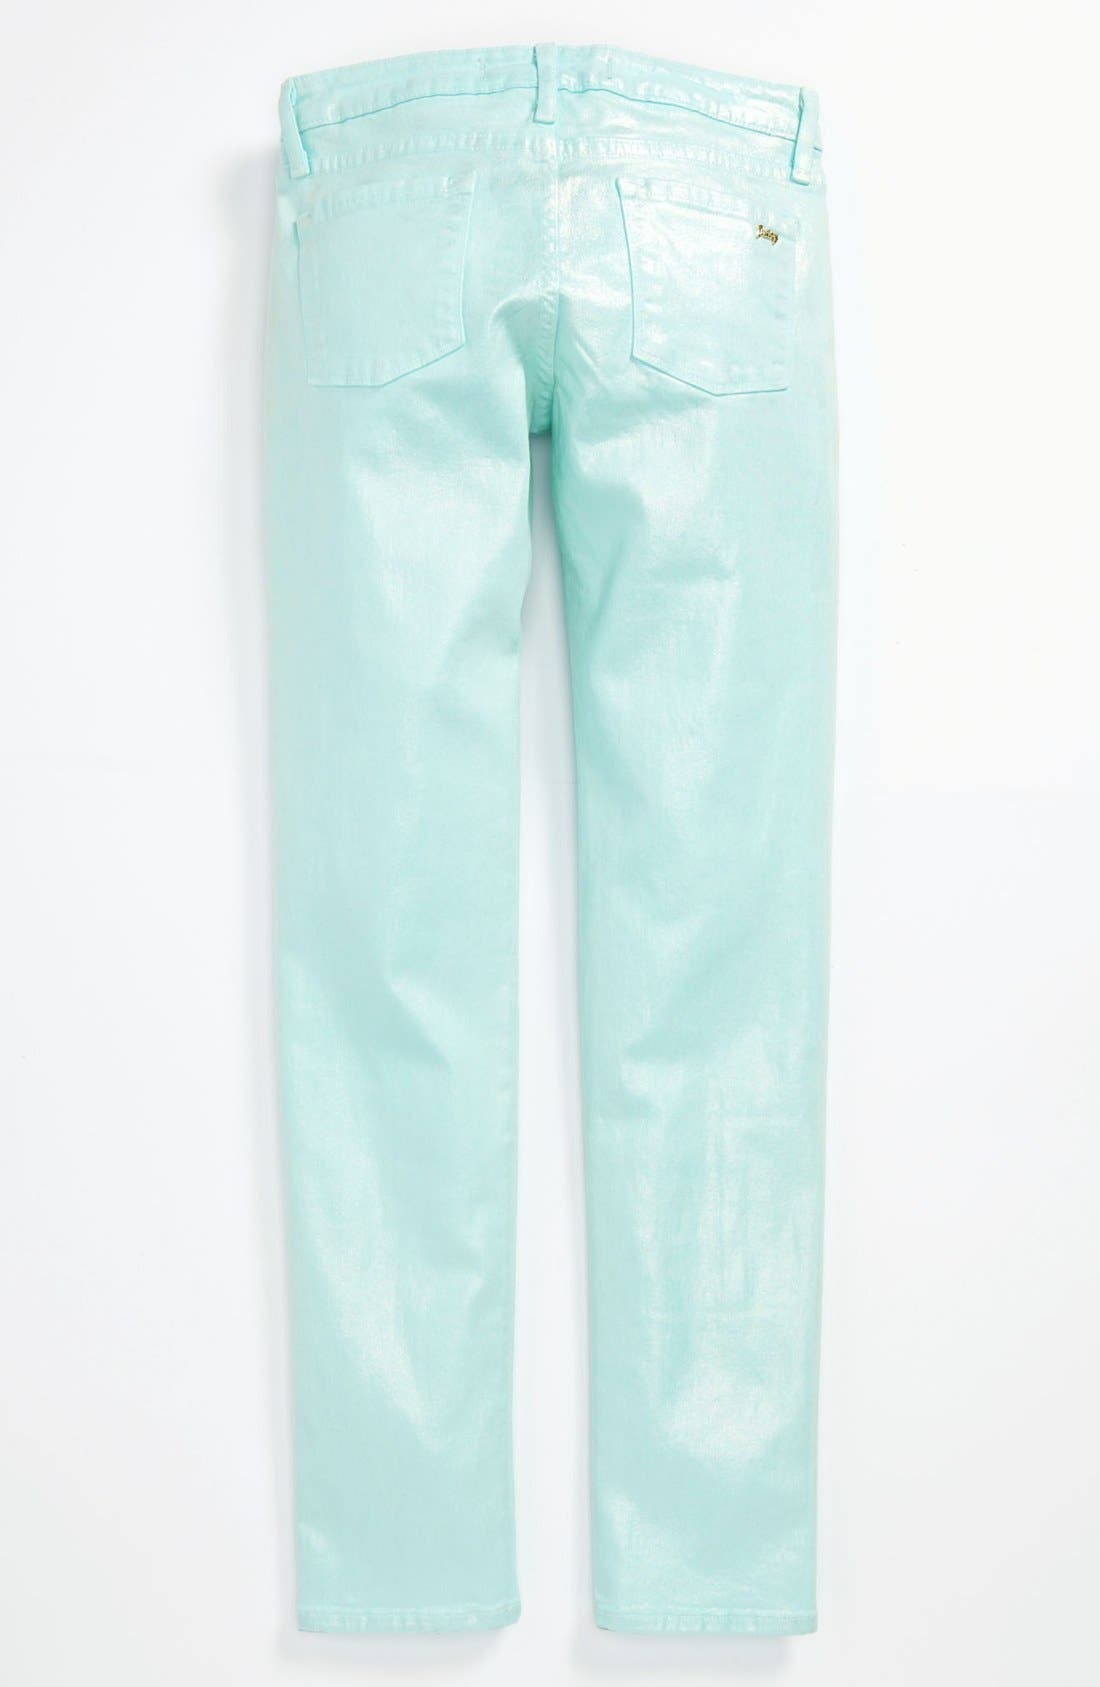 Main Image - Juicy Couture 'Moonstone Foil' Skinny Jeans (Little Girls & Big Girls)